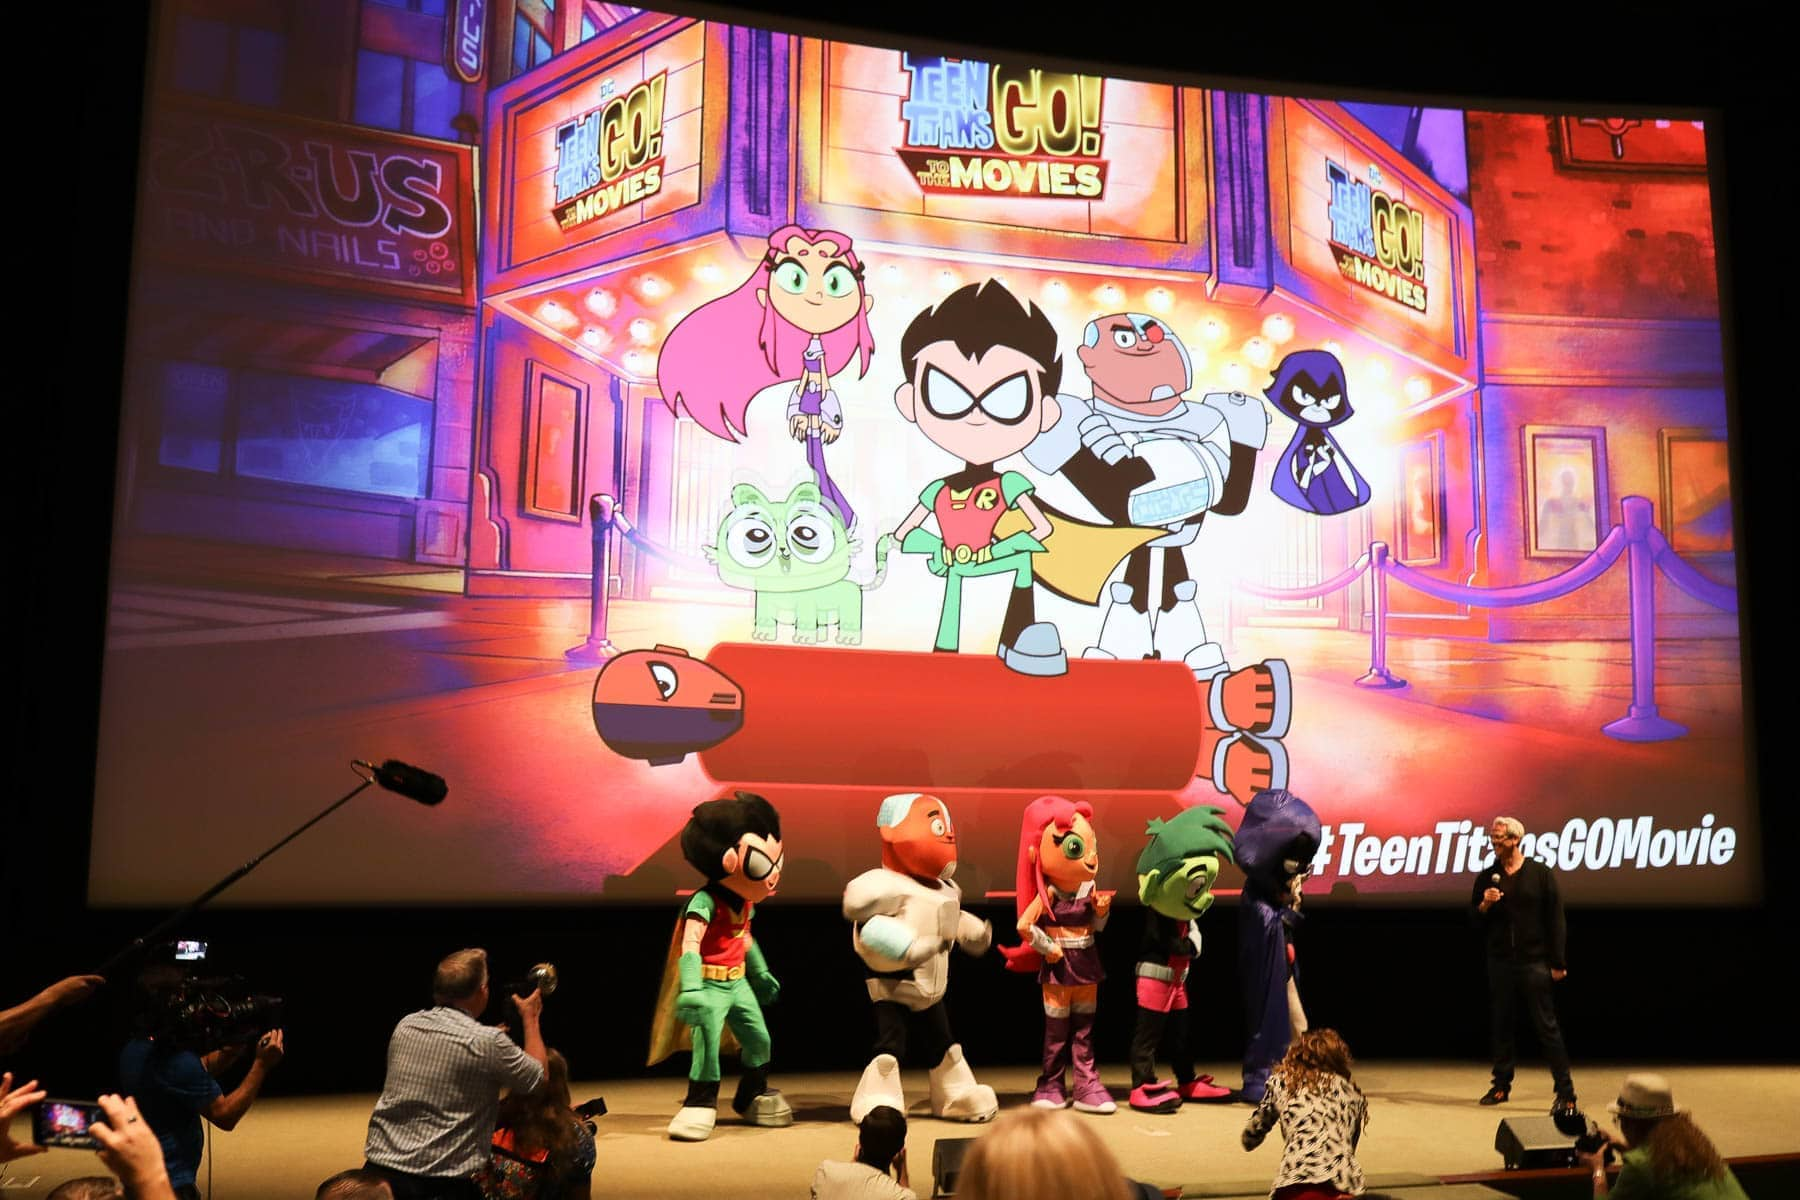 Teen Titans Go to The Movies Mascots on Stage #hollywood #warnerbrothers #teentitansgotothemovies #citygirlgonemom